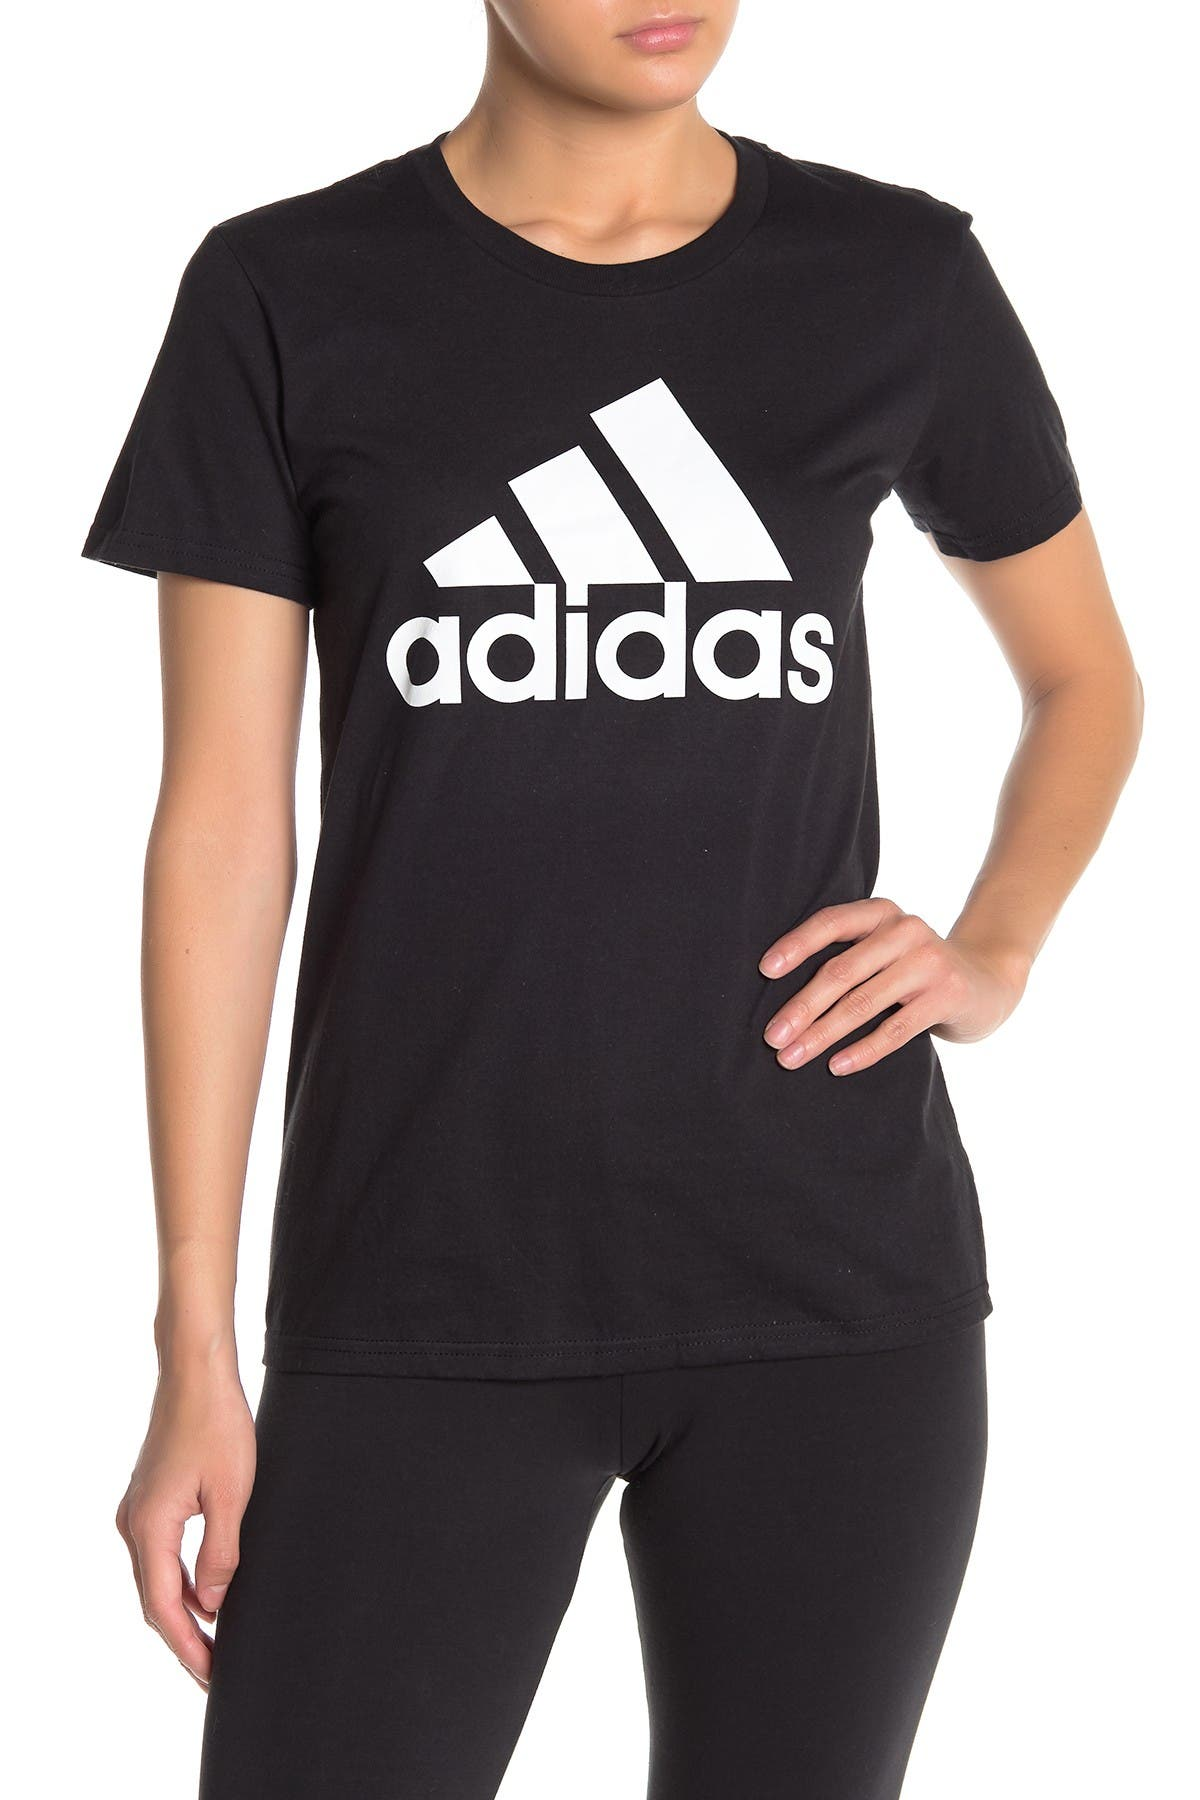 Image of adidas Basic Short Sleeve Logo T-Shirt